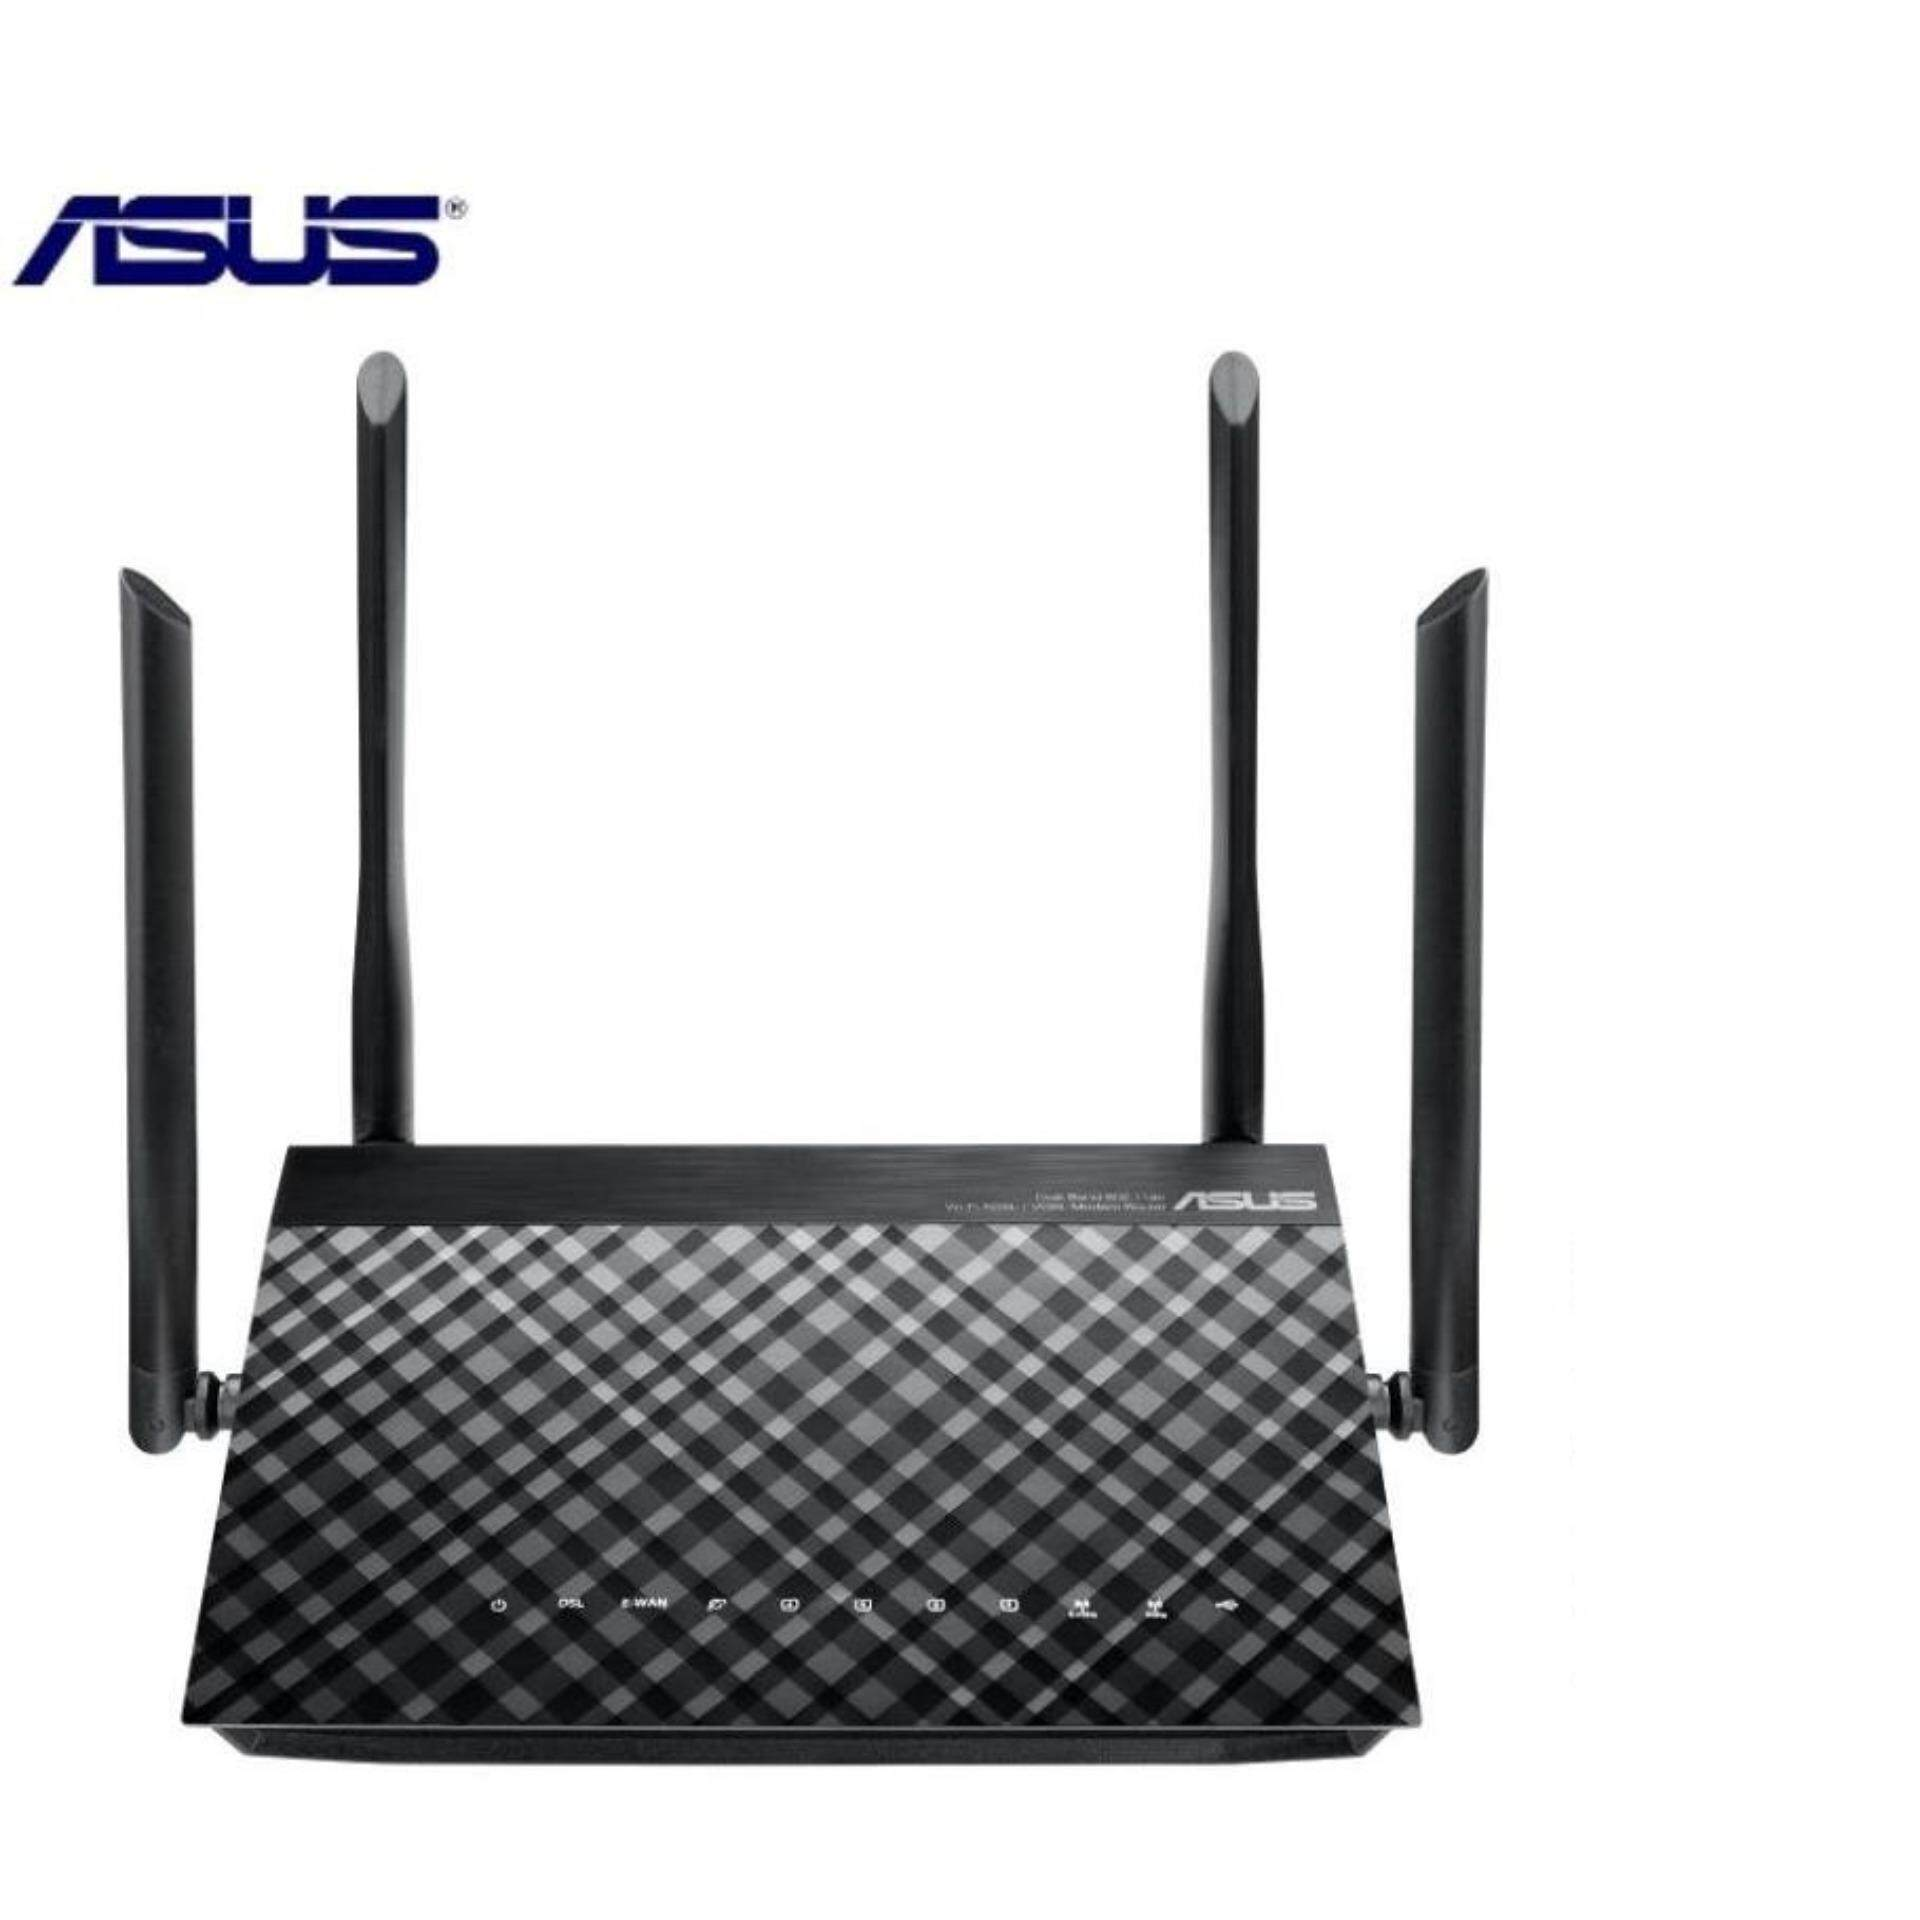 Asus Routers Price In Malaysia Best Lazada Rt Ac3200 Tri Band Wireless Gigabit Router Ac1200g Dual